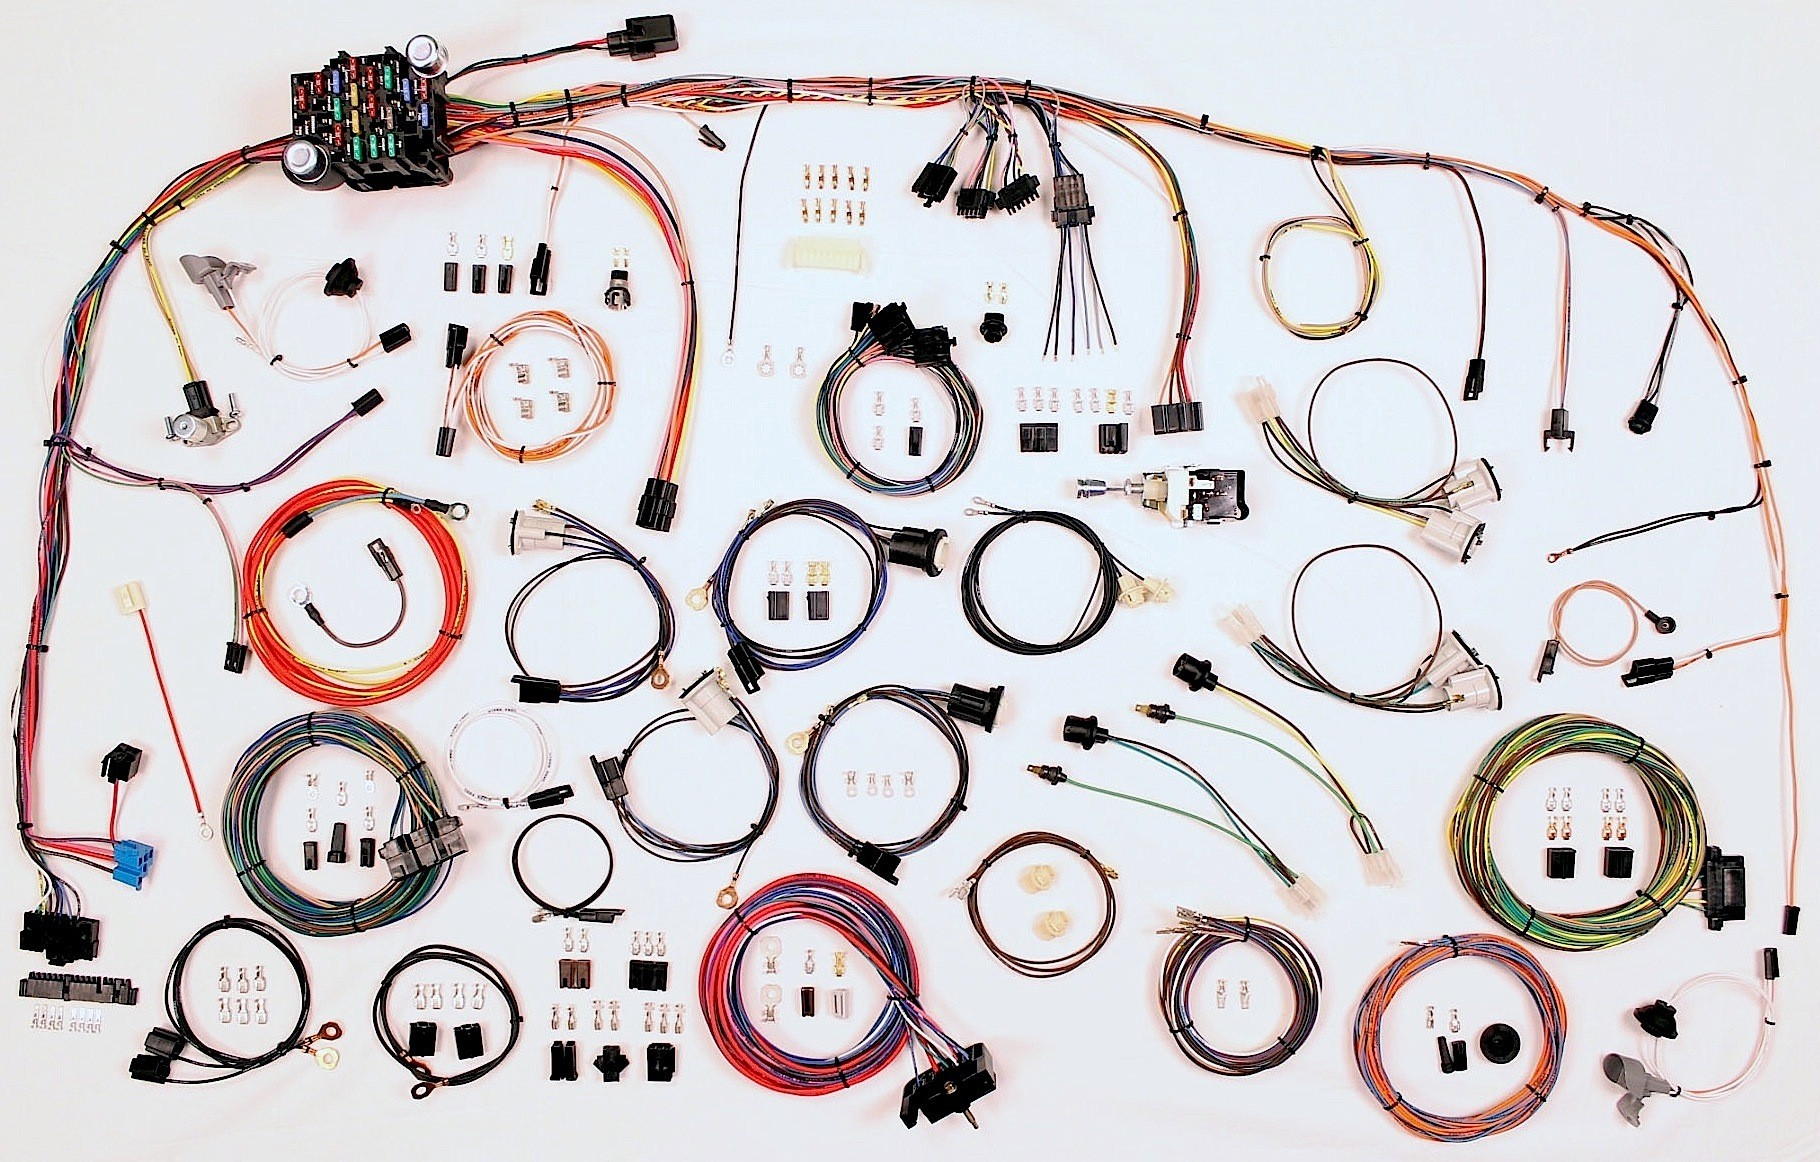 American Autowire 510347 Car Wiring Harness, Classic Update, Complete, GM Truck 1973-82, Kit